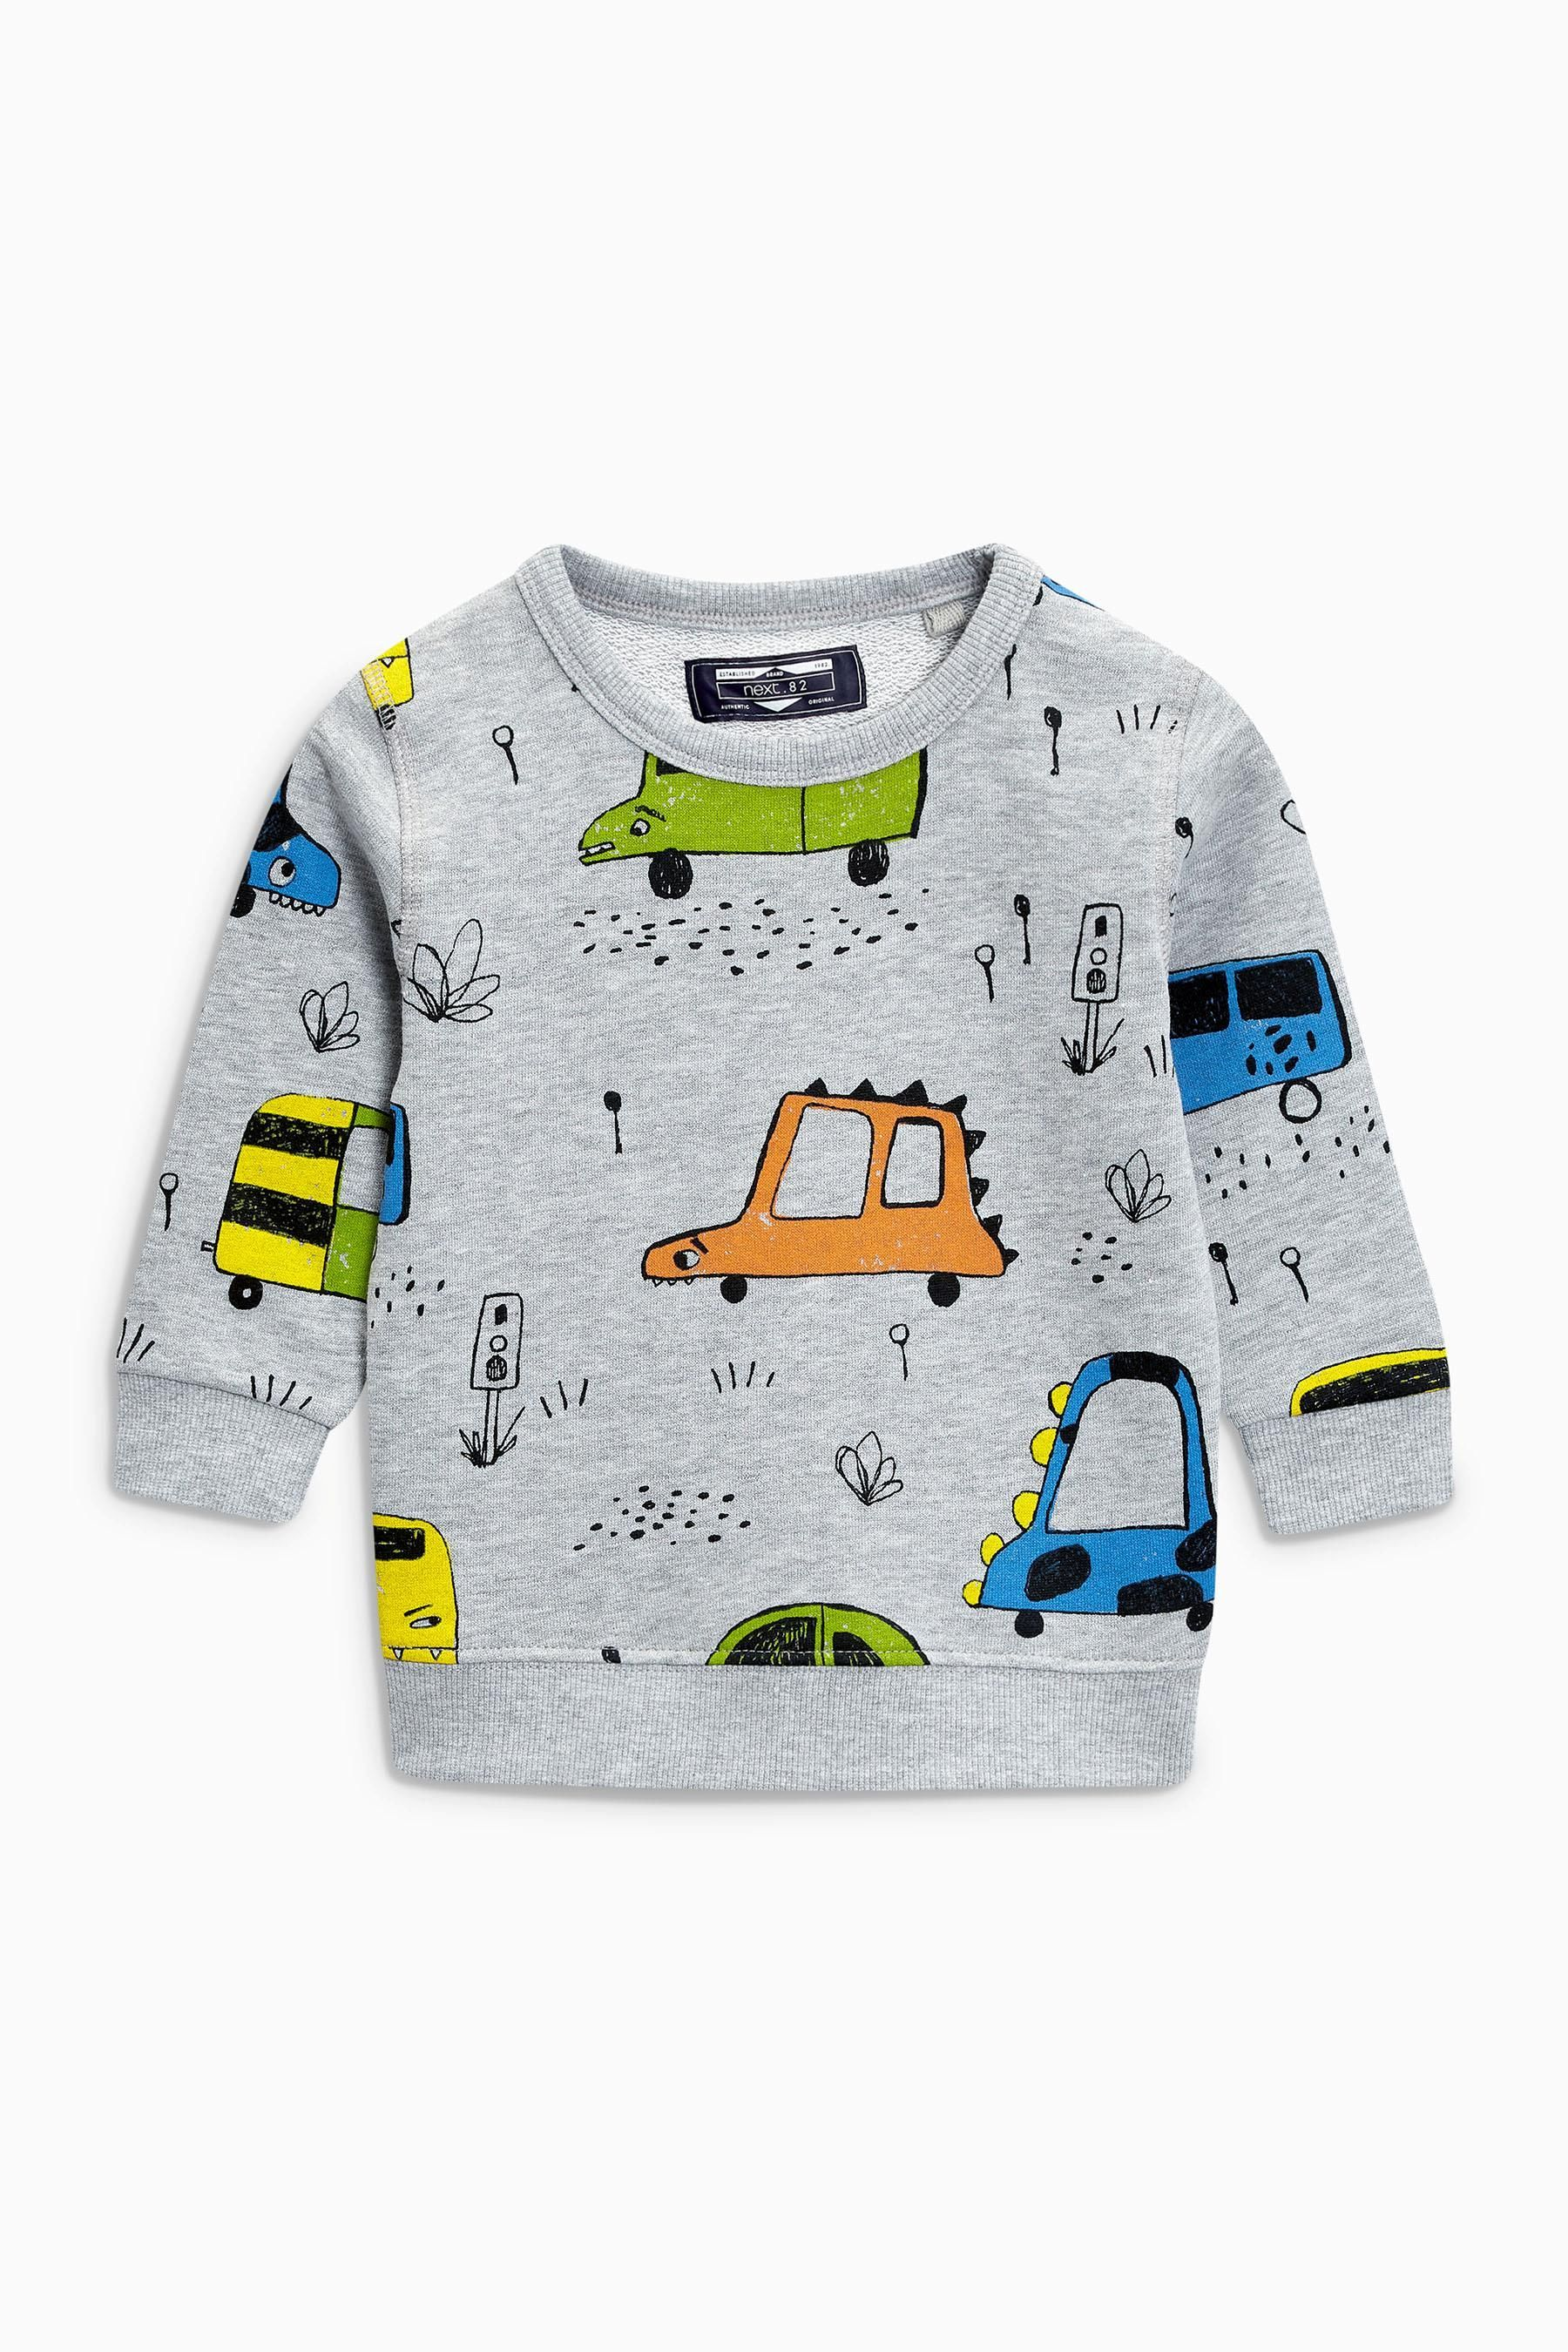 98ddc36e8 Buy Stripe And Car All Over Print Crew Two Pack (3mths-6yrs) from ...